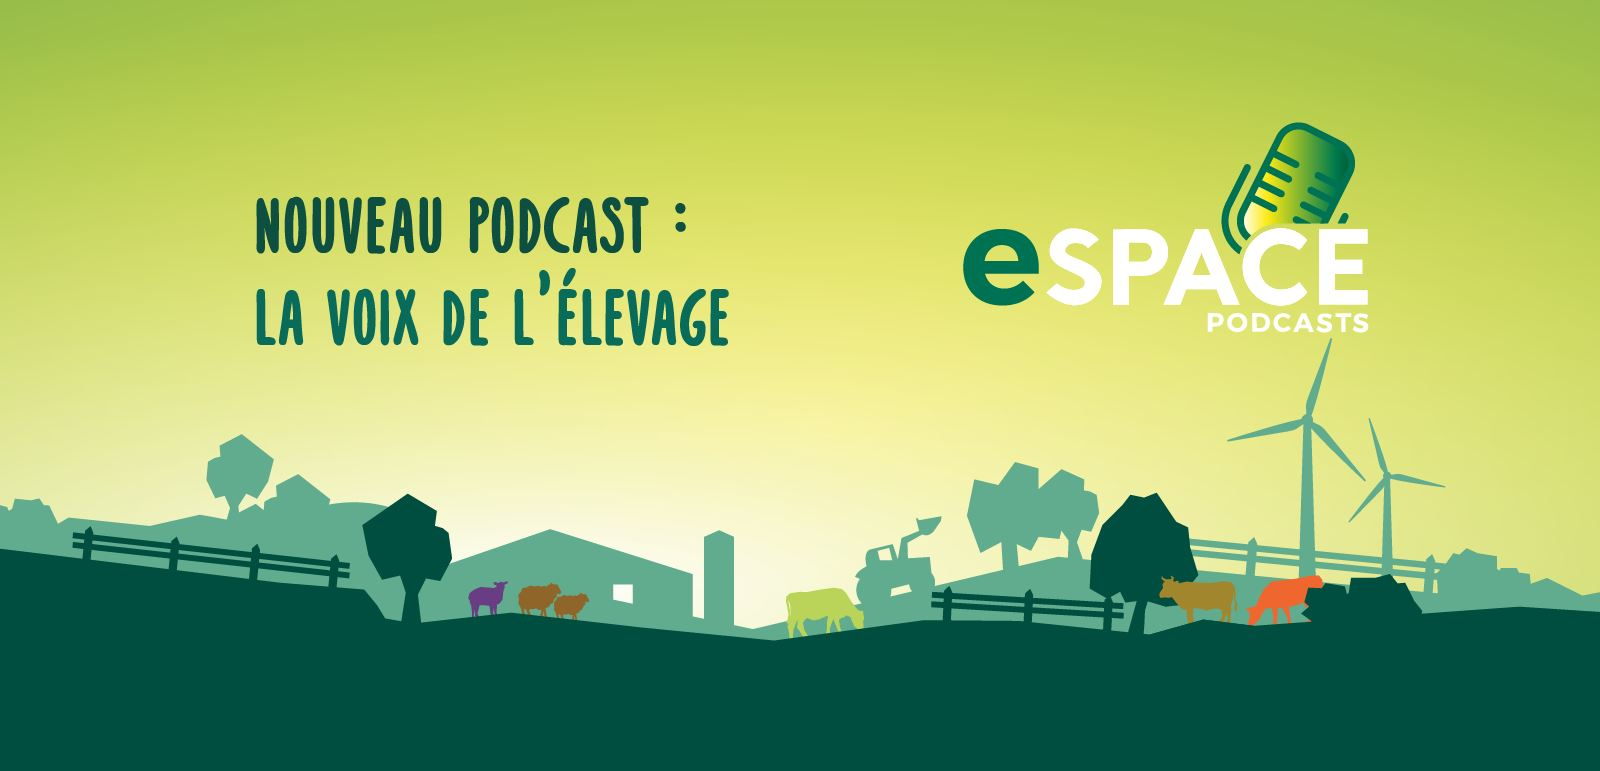 Nouveau podcast disponible